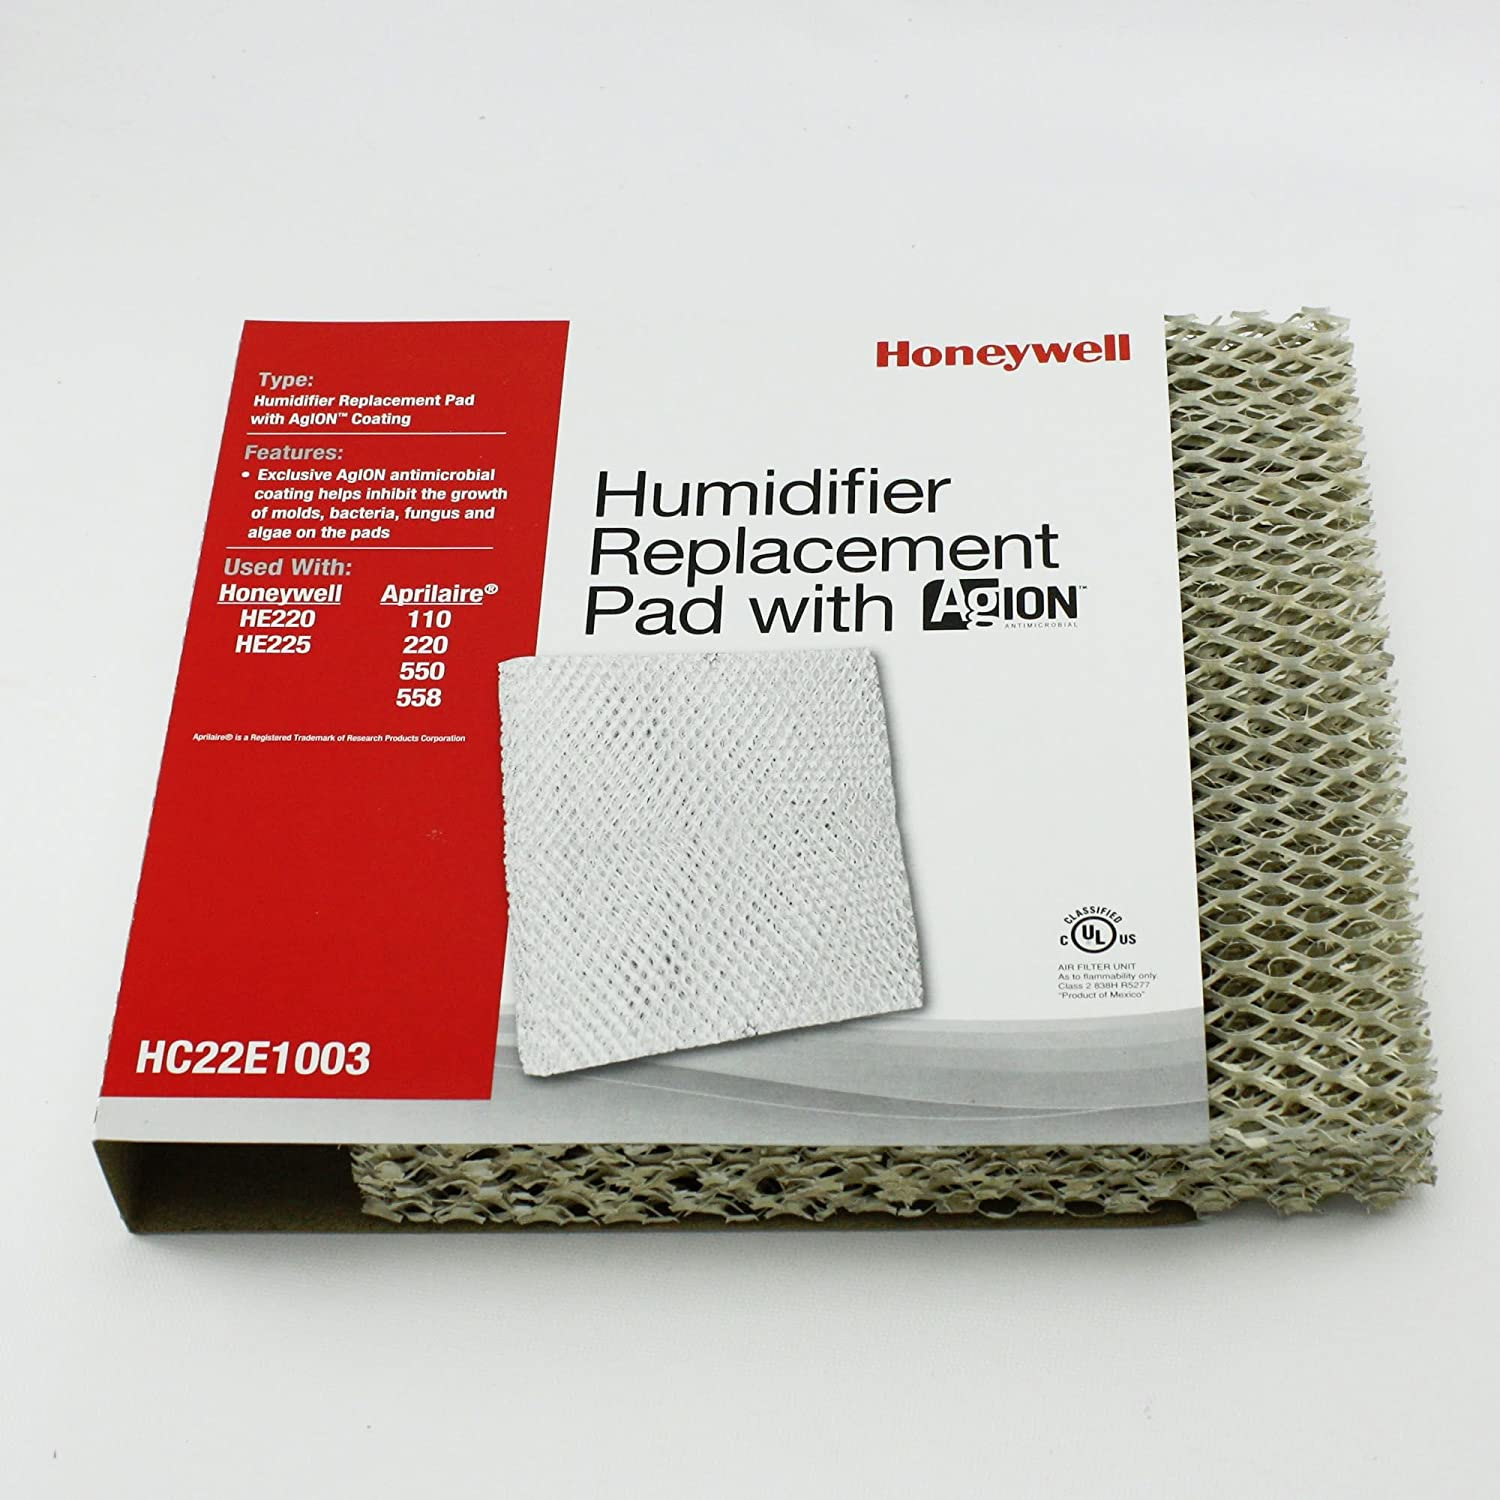 6 Humidifier Furnace Filter for Honeywell Model HE225B NEW